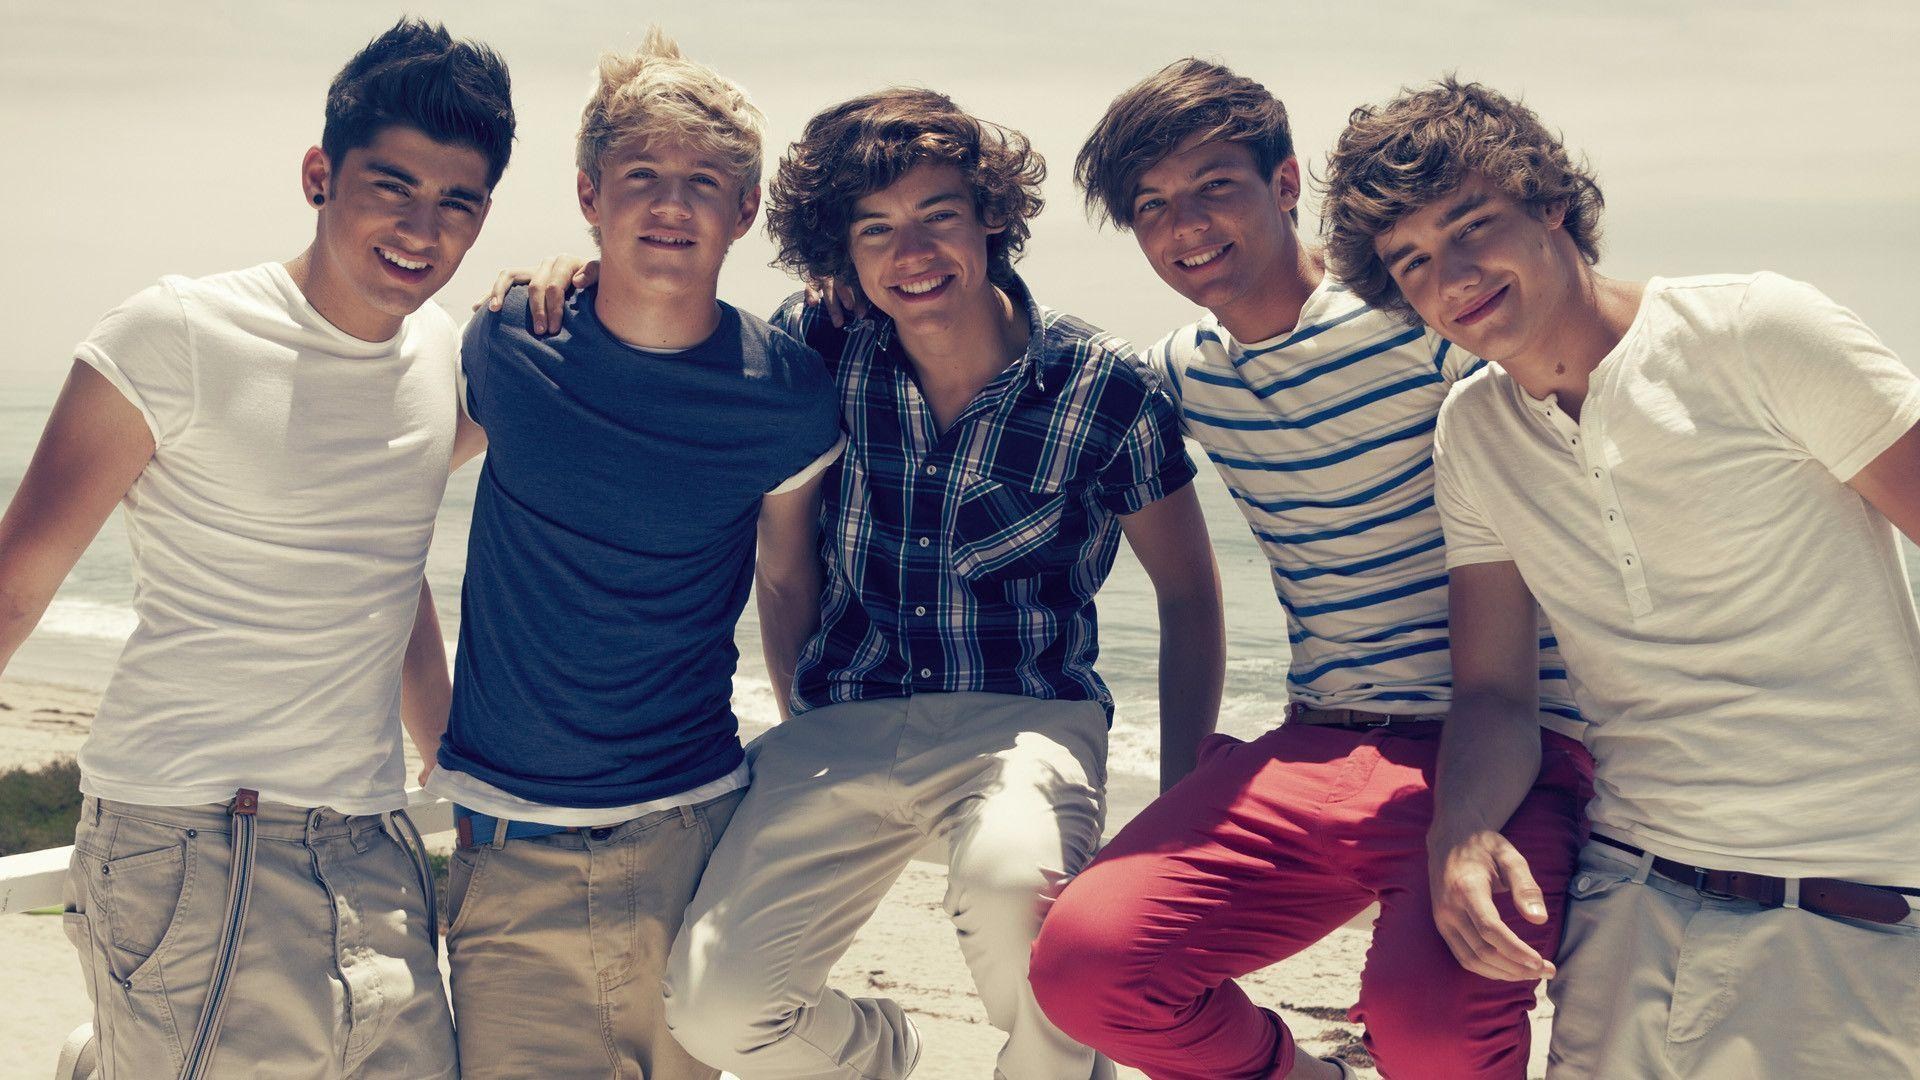 Background One Direction Wallpaper 1920x1080 | Hot HD Wallpaper